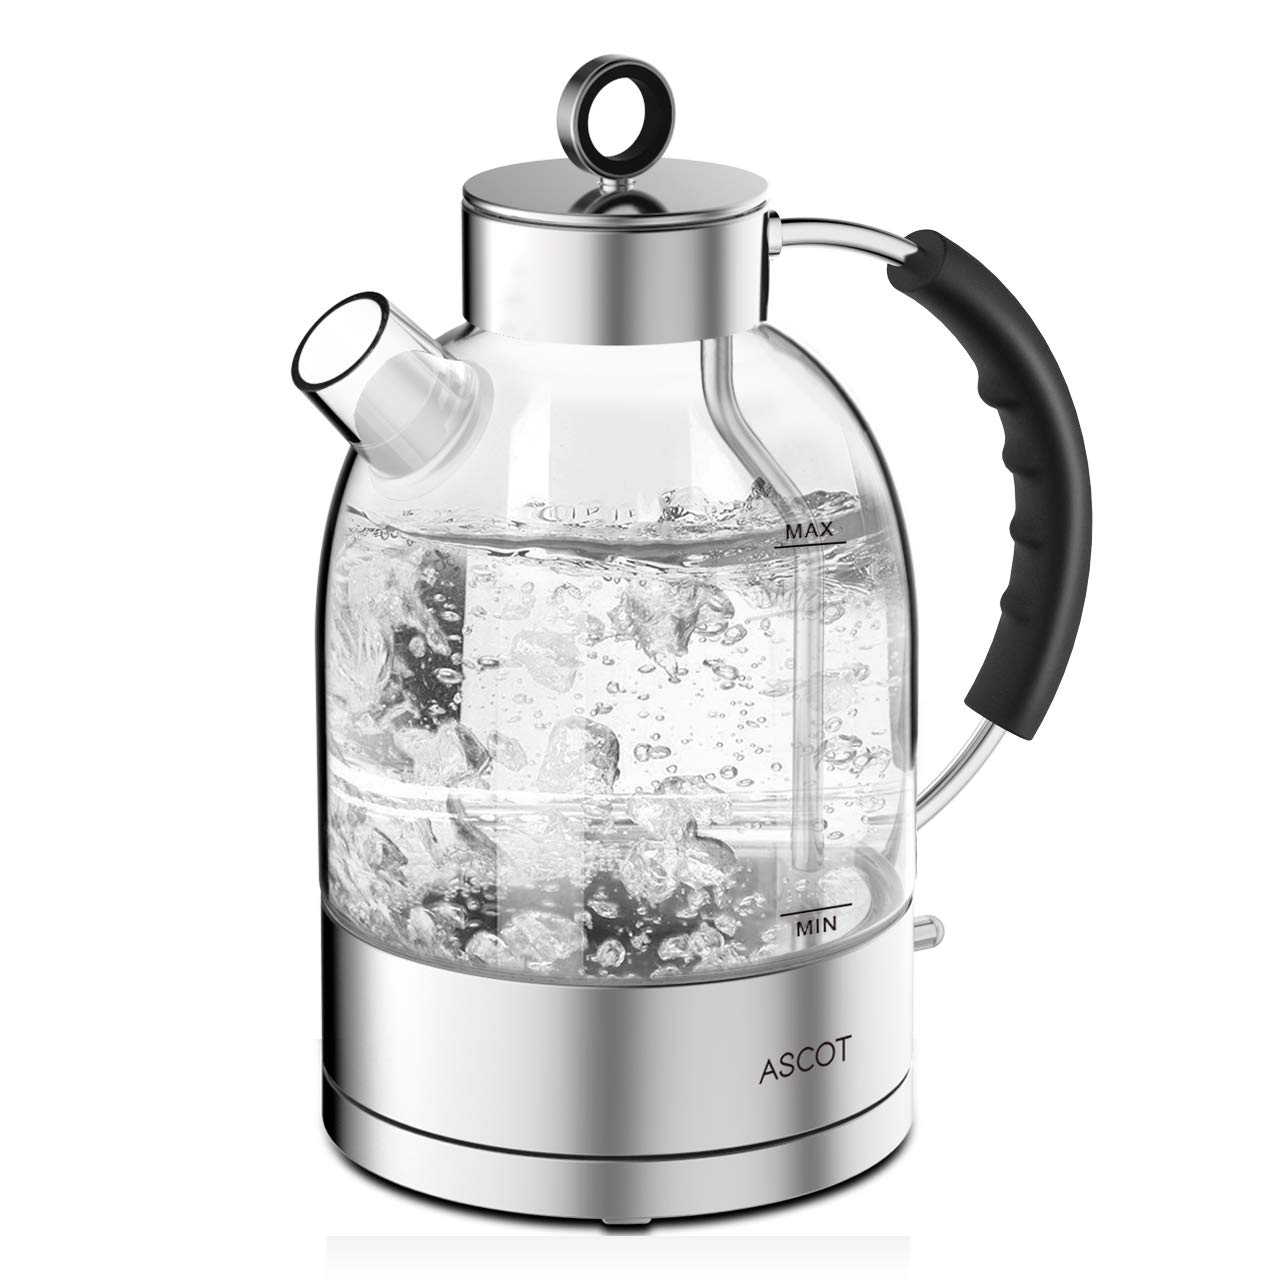 Kettles-Electric-Glass-Water-Kettle, ASCOT Tea Heater & Hot Water Boiler, 1.7QT, 1500W, Stainless Steel, BPA-Free, Cordless, Automatic Shutoff, Boil-Dry Protection